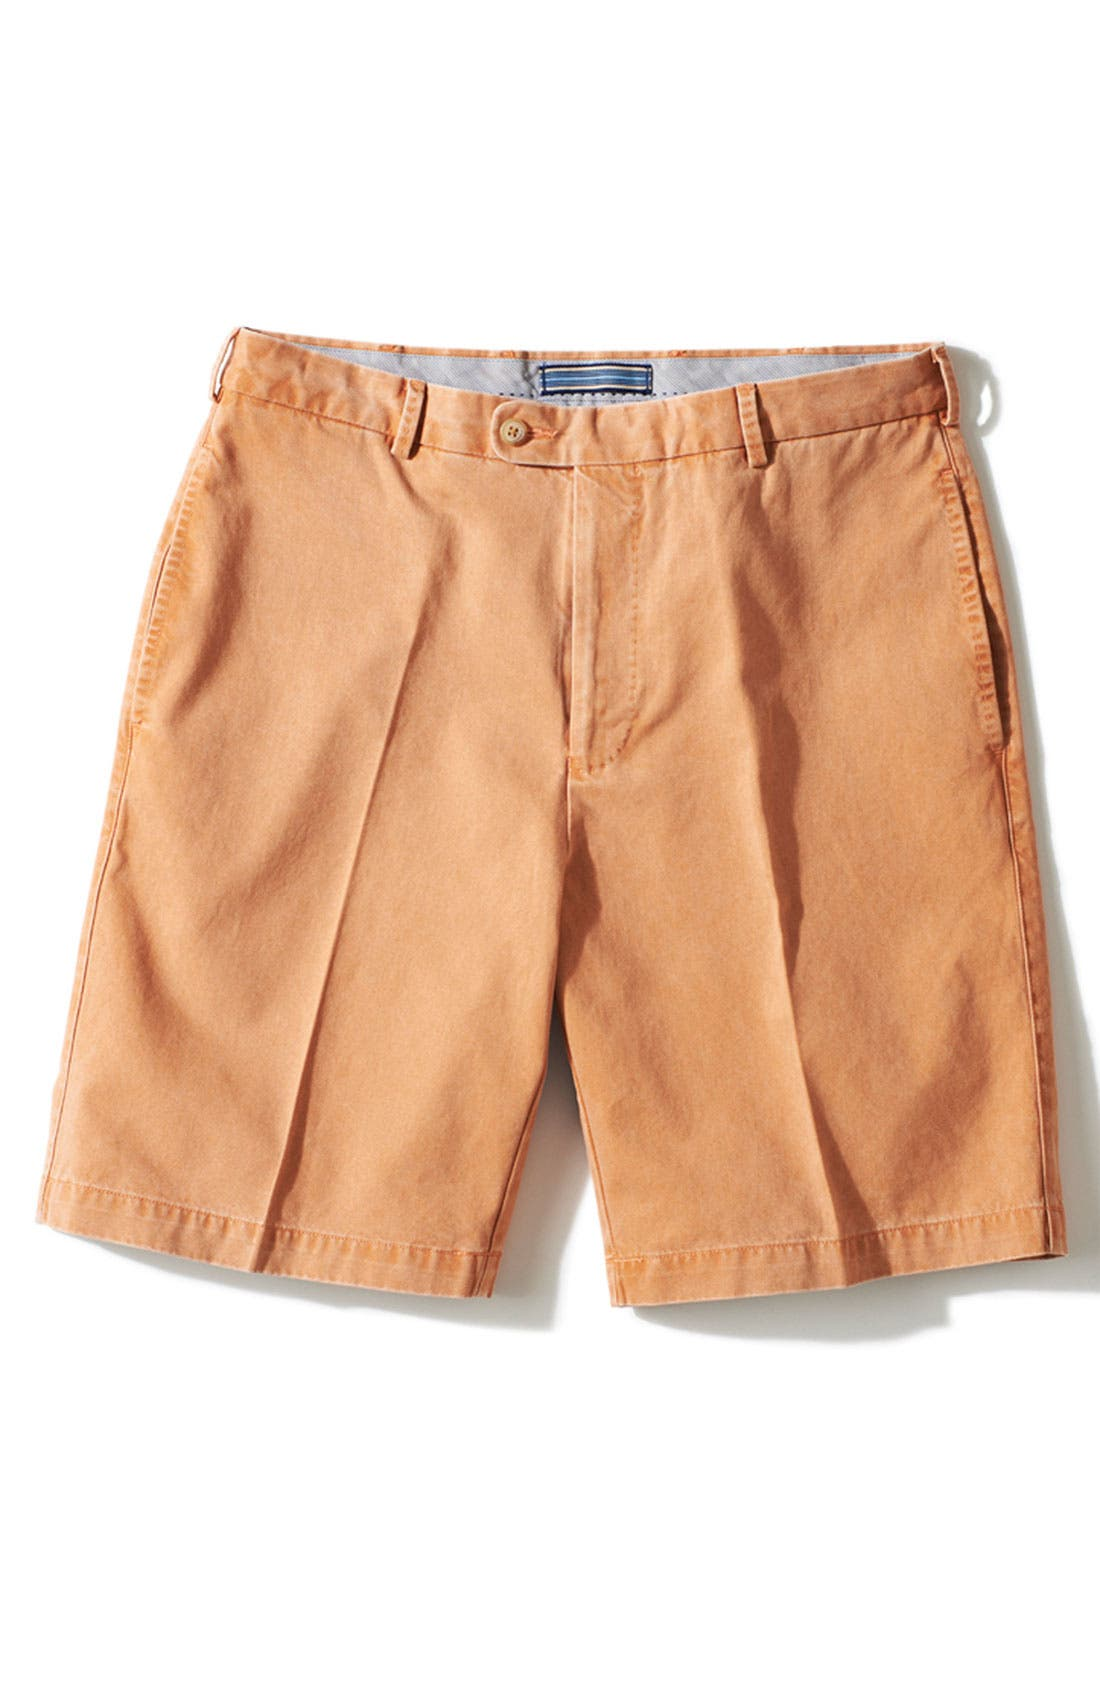 Alternate Image 3  - Peter Millar Washed Twill Shorts